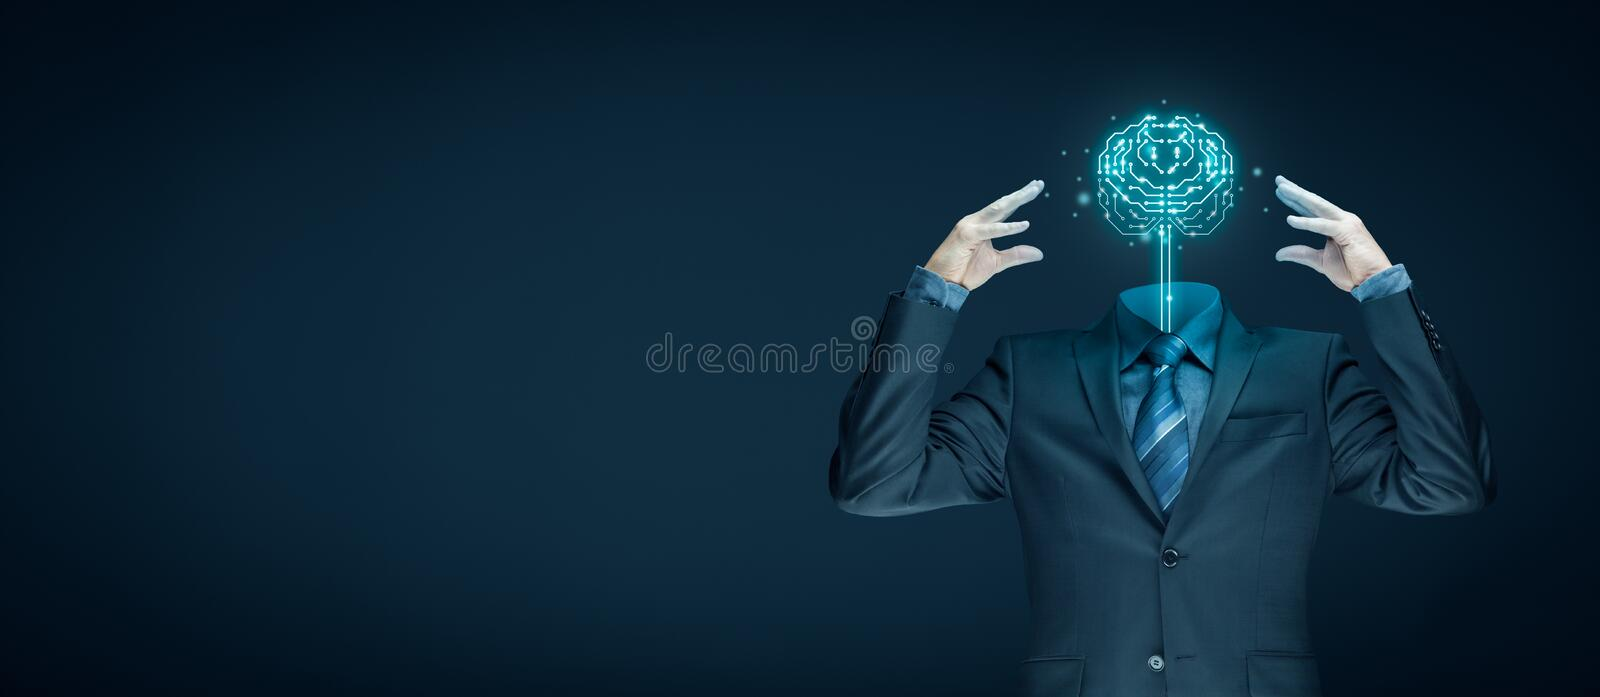 Artificial intelligence concept. Brain with printed circuit board PCB design and businessman representing artificial intelligence AI, data mining, machine and royalty free stock photography